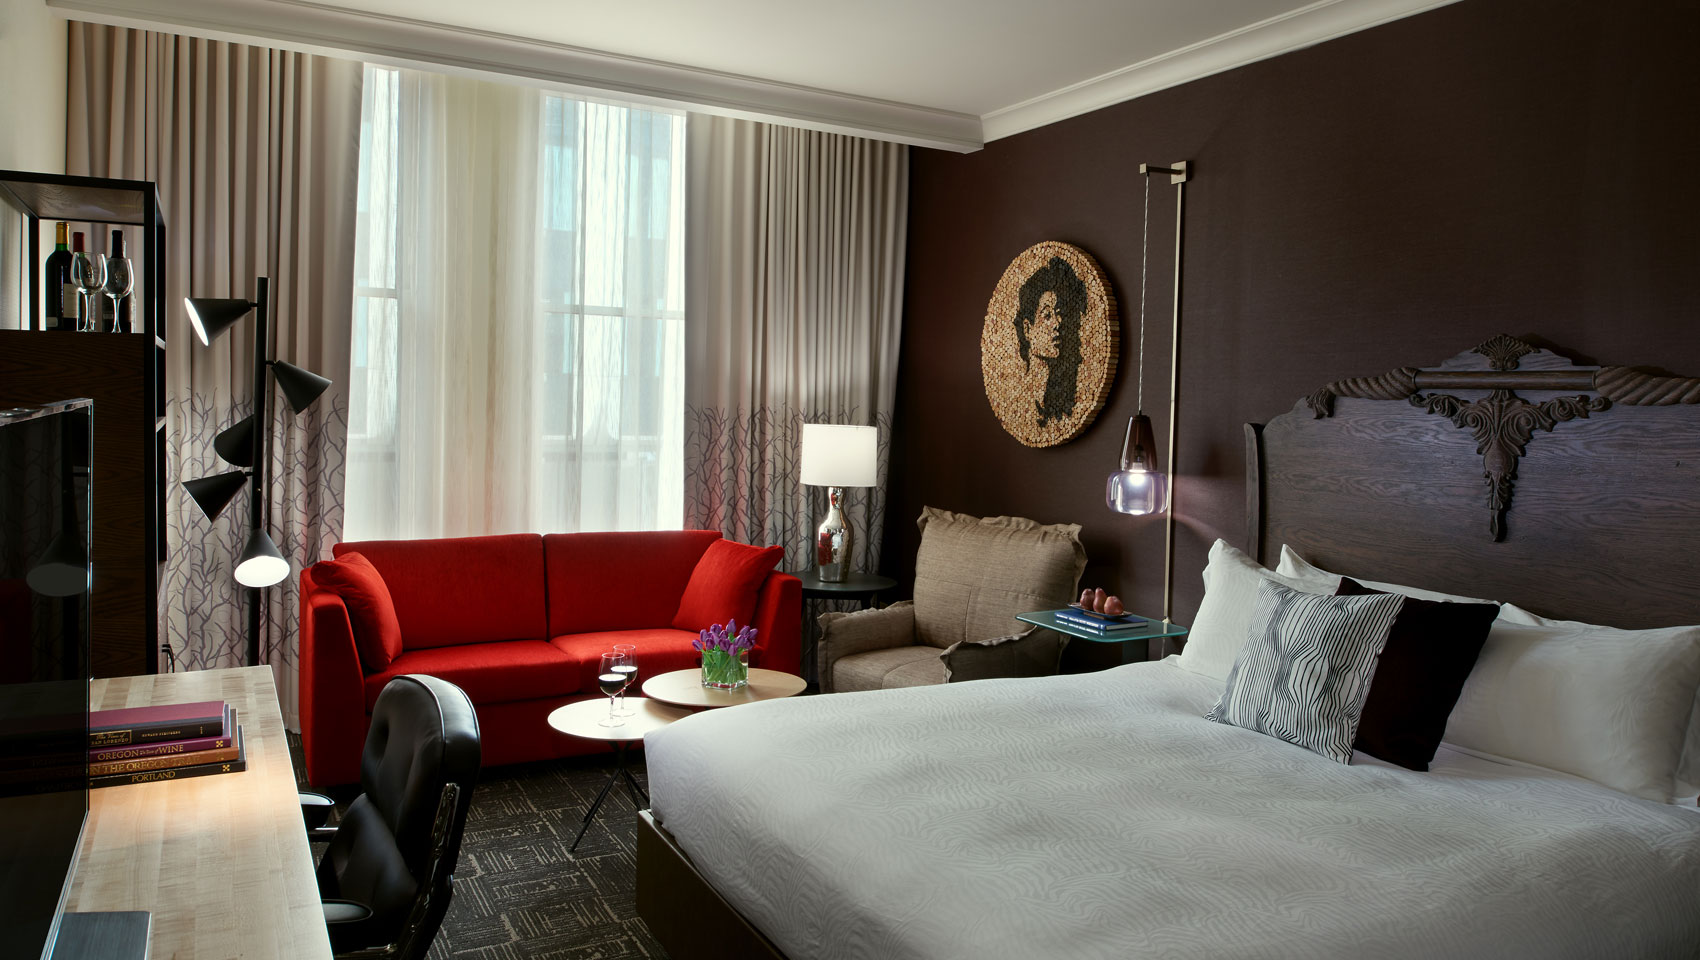 King Guestrooms at Hotel vintage portland